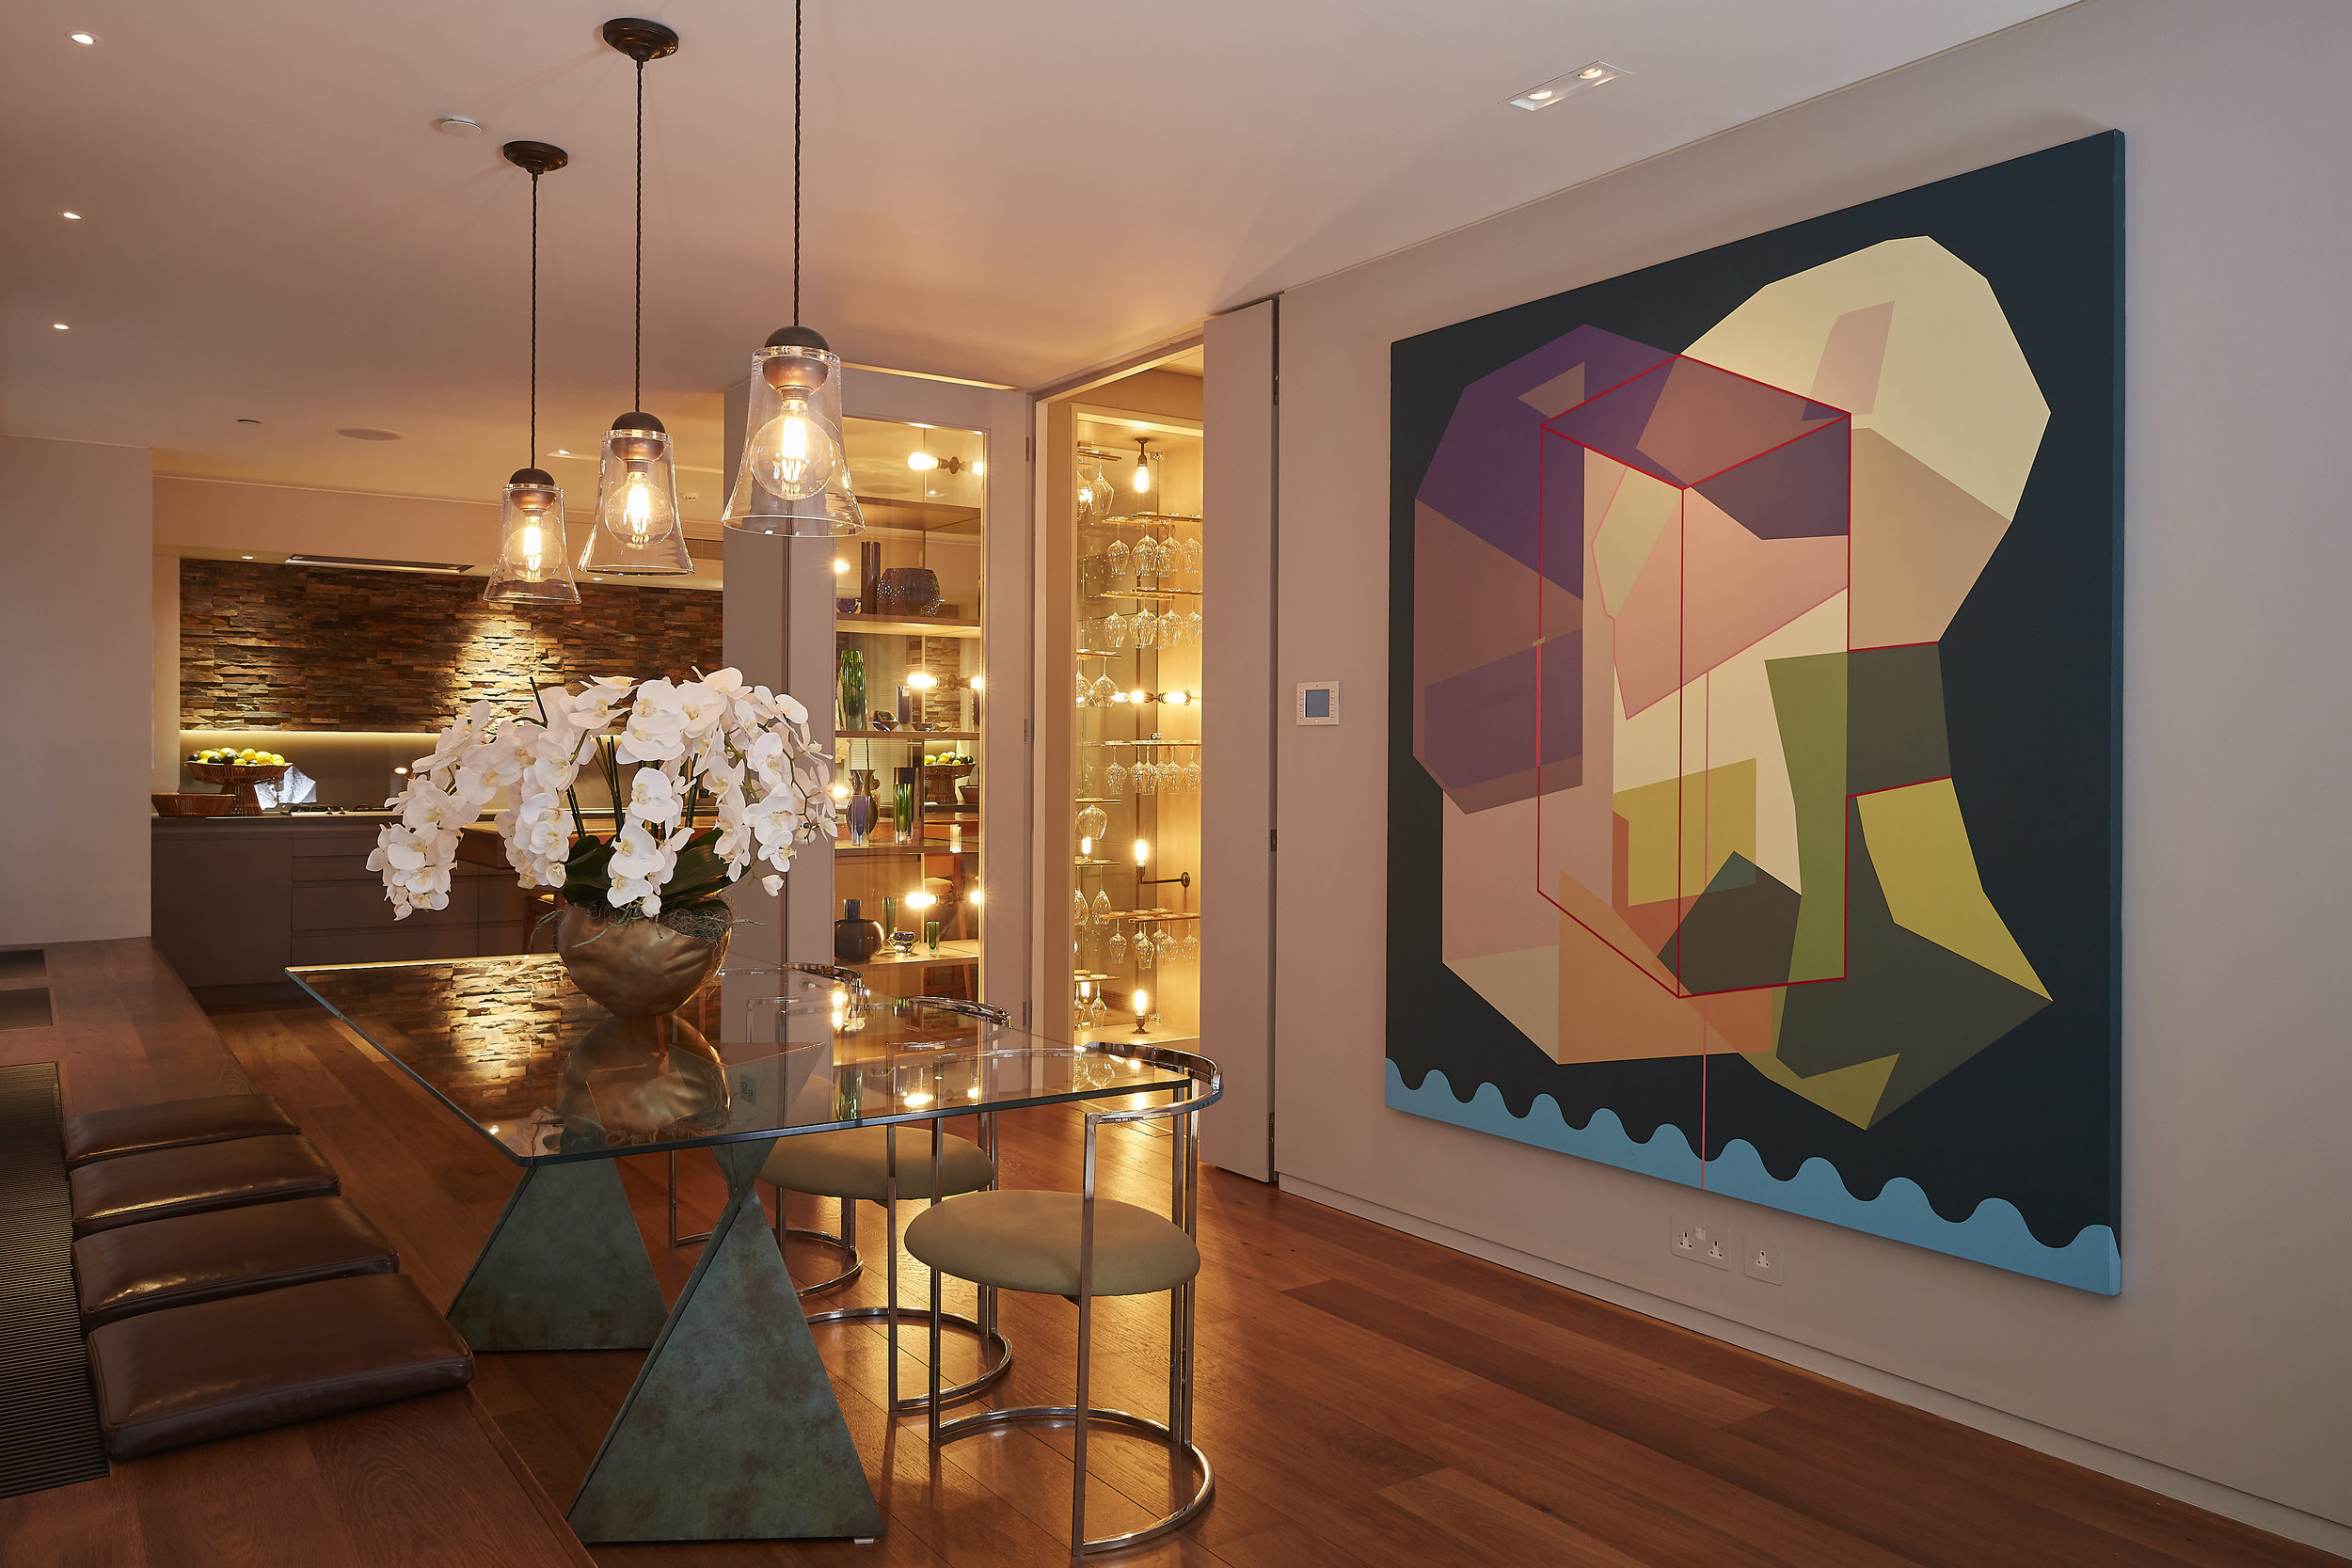 Designed by Woulfe, Notting Hill, London